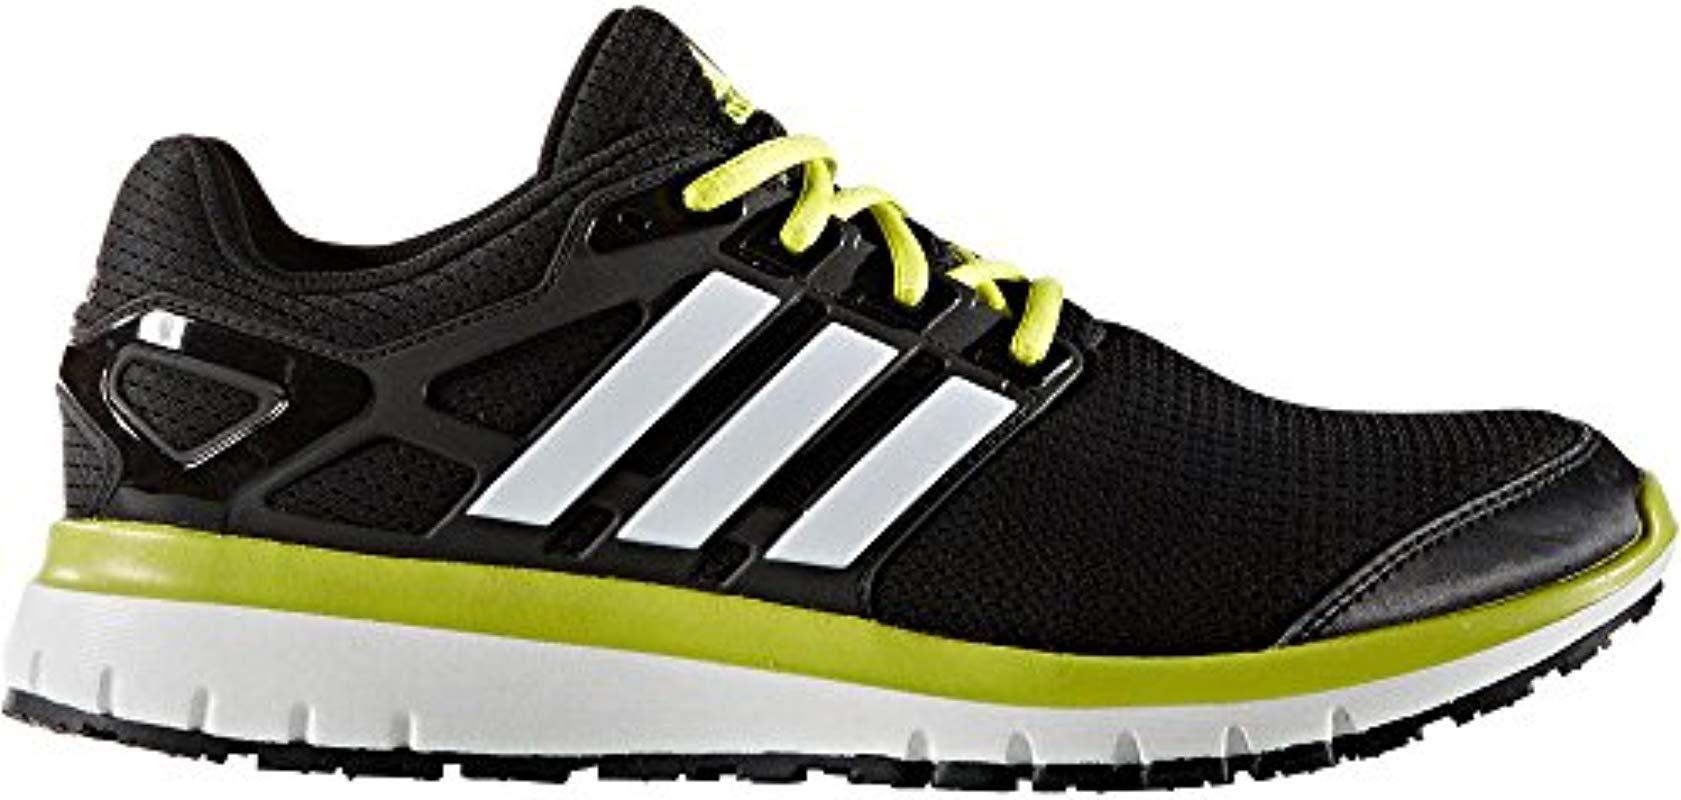 separation shoes 26ad1 cac3b Lyst - Adidas Energy Cloud M Running Shoe in Black for Men